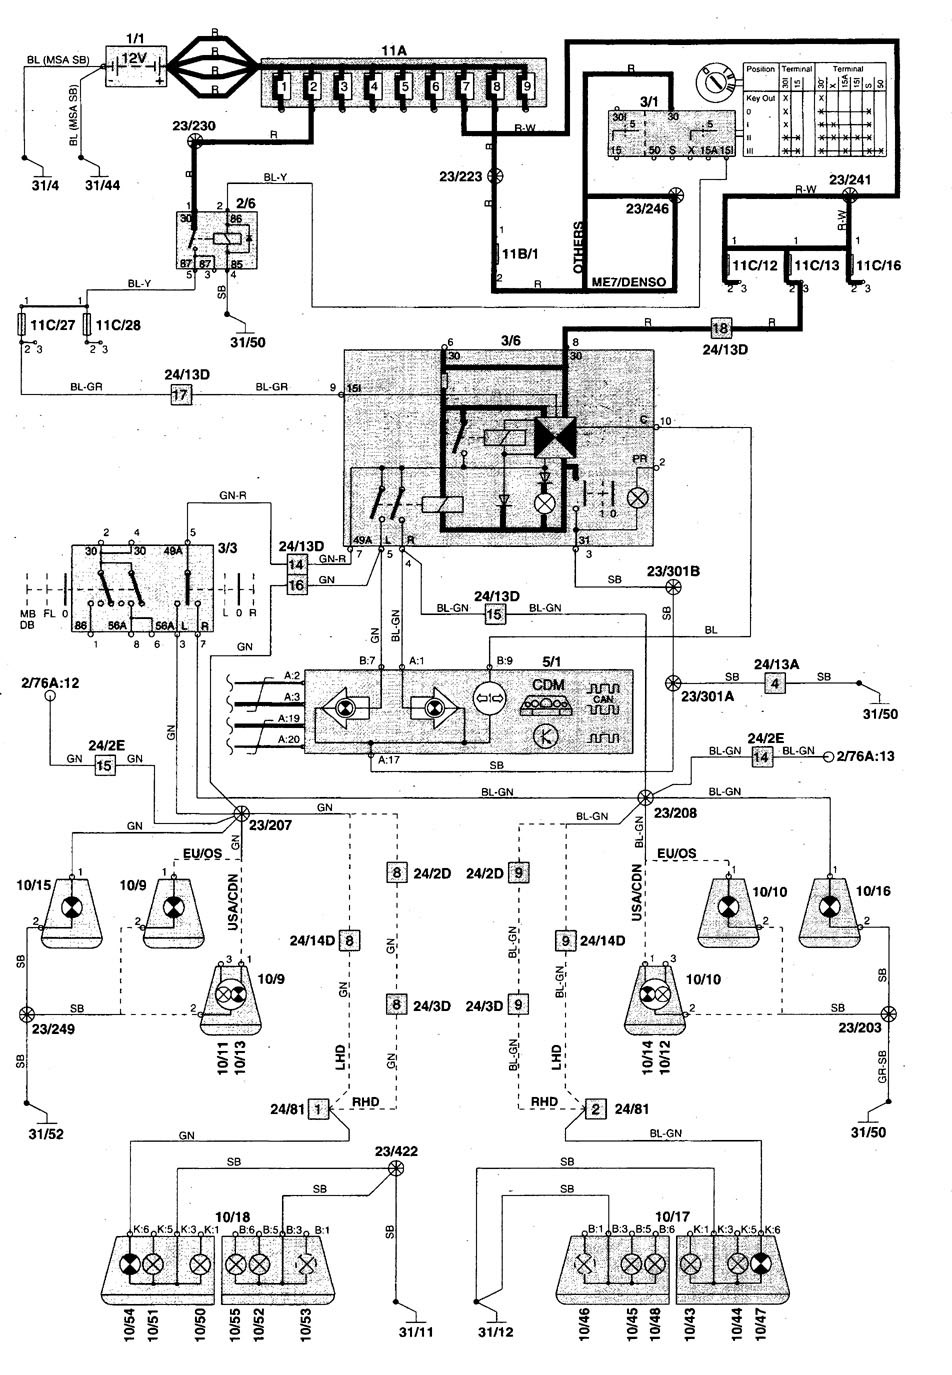 medium resolution of 96 volvo 850 engine diagram wiring libraryvolvo v70 wiring diagram wiring diagram schemes 1998 volvo s70